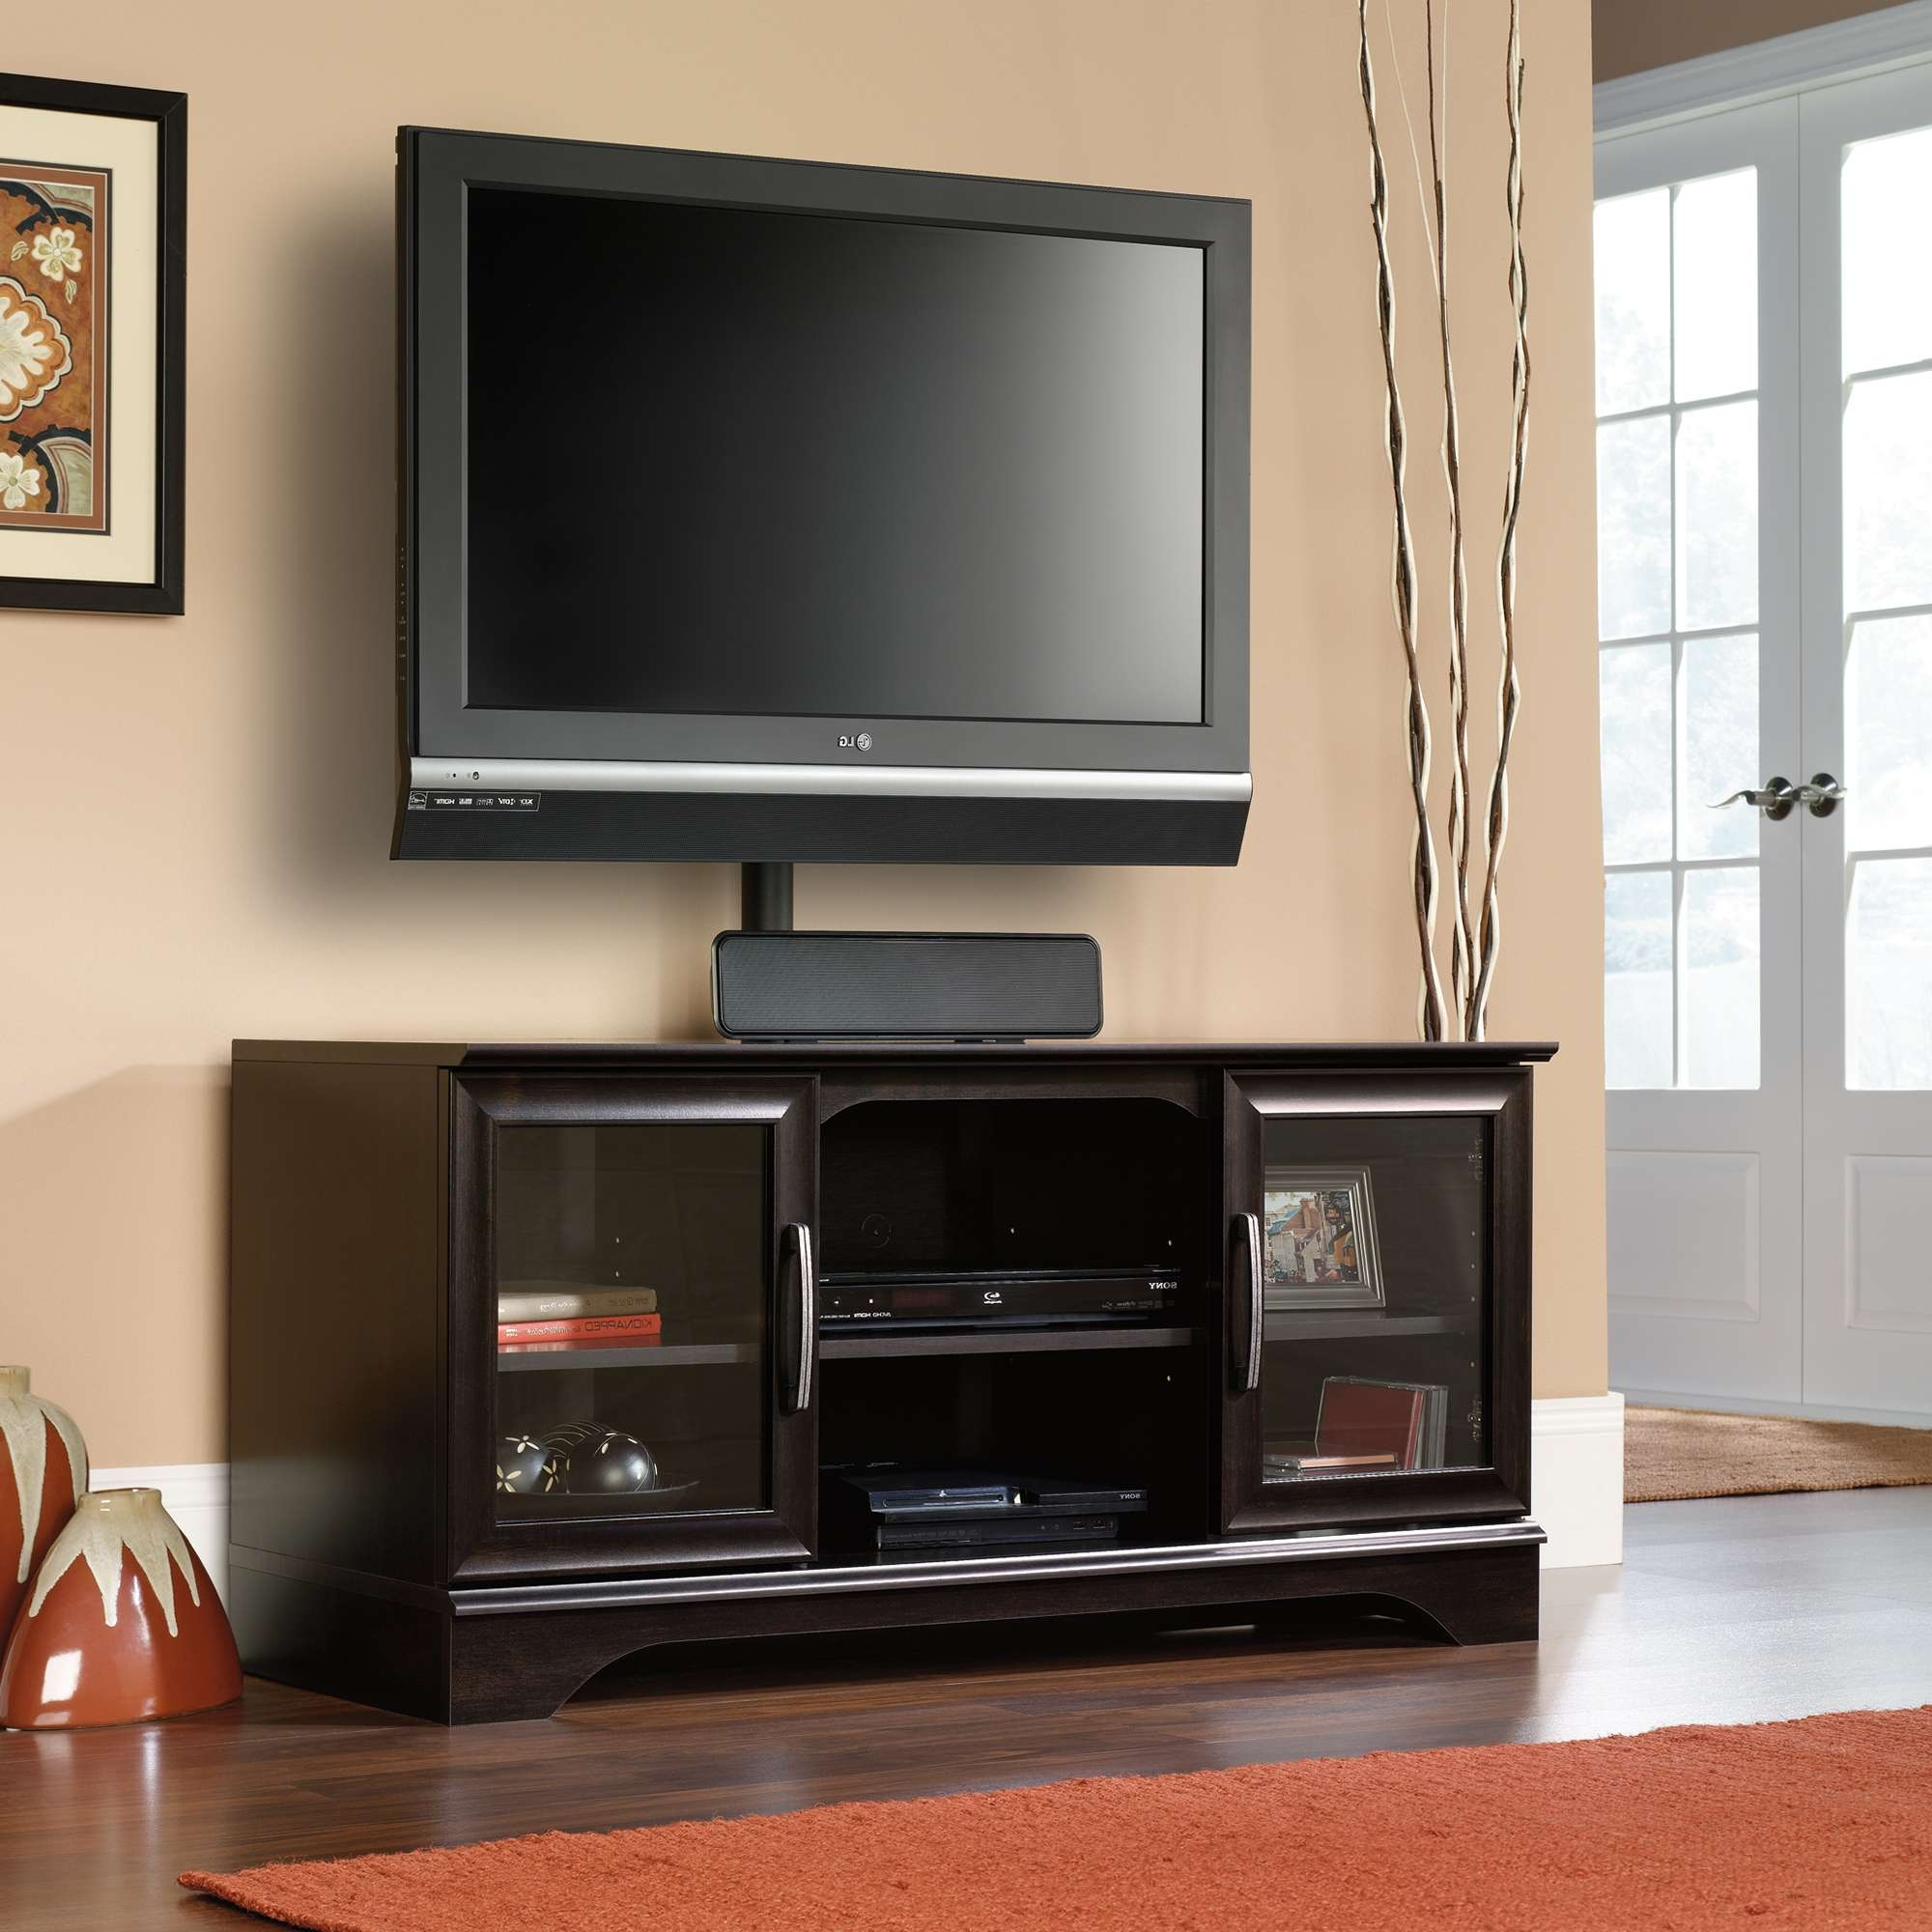 Imposing Swivel Mount Pedestal Base Wall Mount For Universal Tv For Swivel Tv Stands With Mount (Gallery 3 of 15)